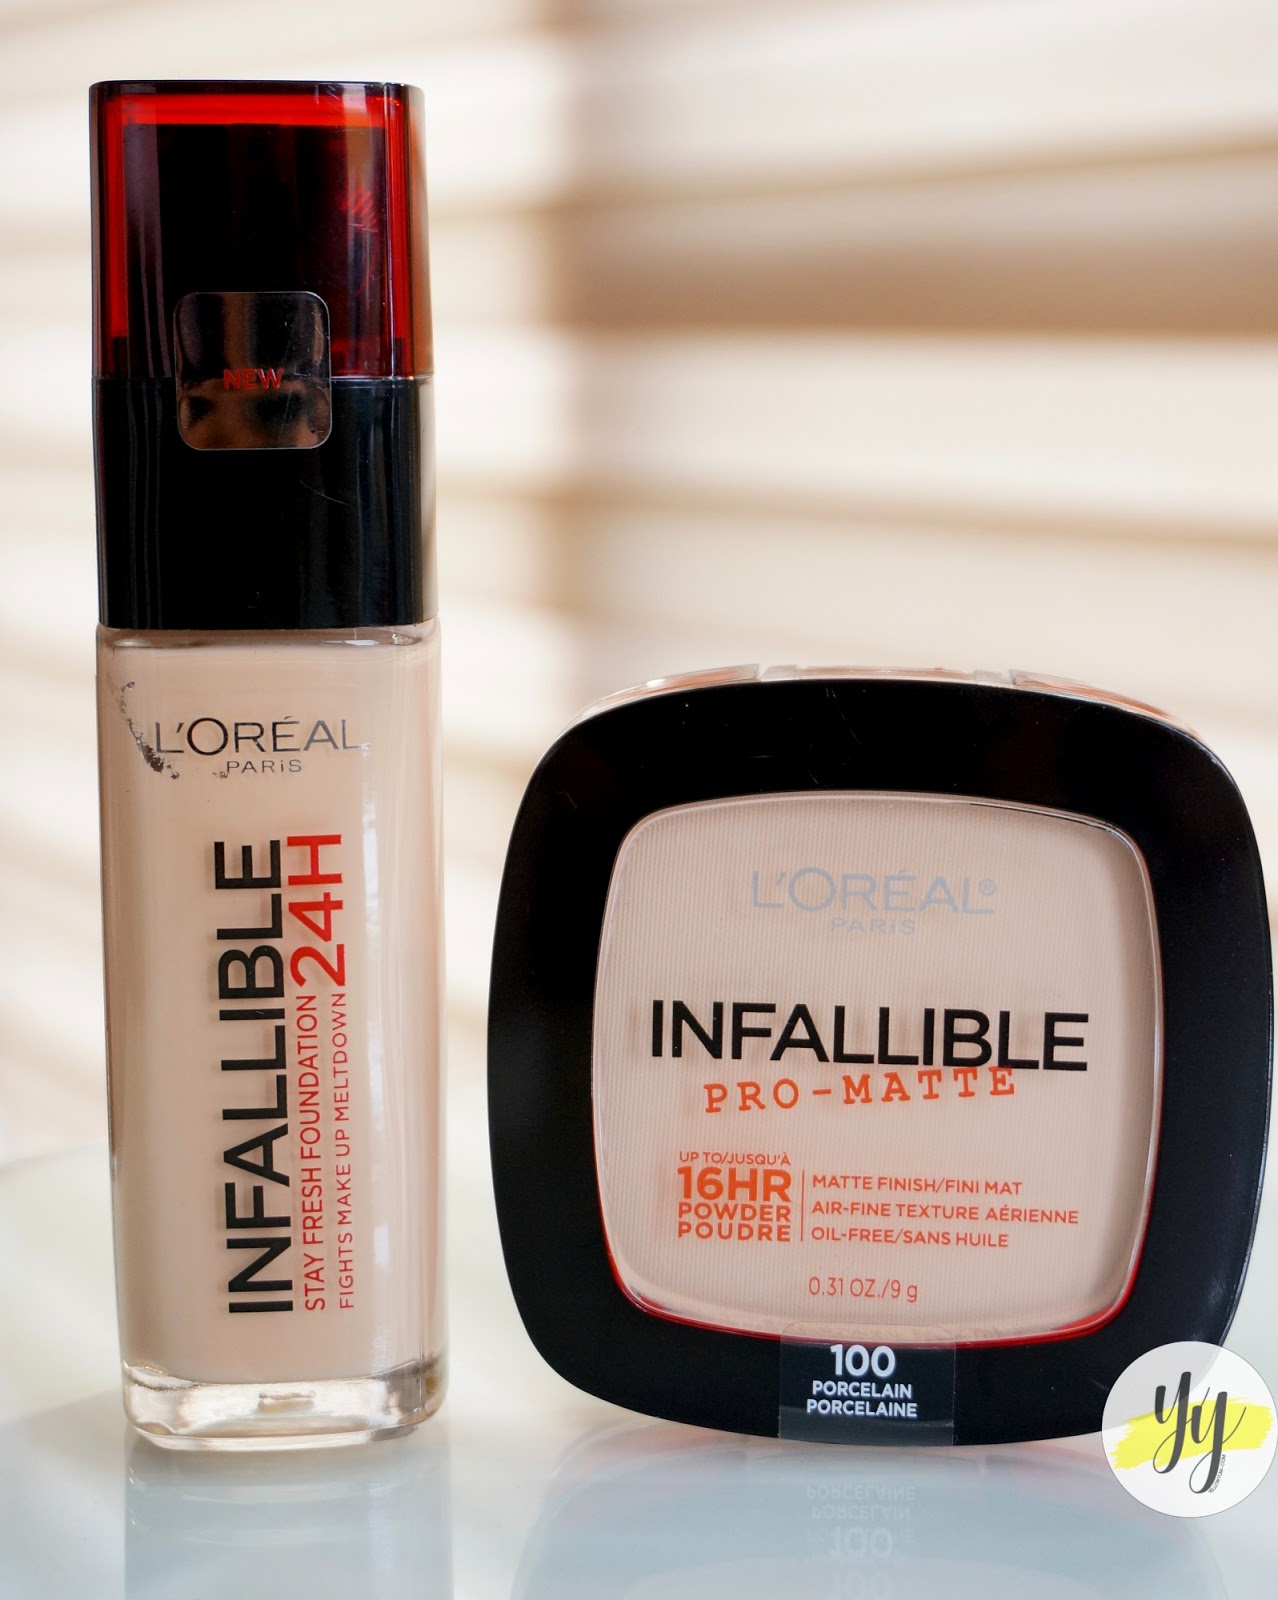 Loreal Paris Makeup Powder Infallible Pro Matte Porcelain Daftar Lamp039oreal Total Cover Foundation I Got The 24hour Stay Fresh In 120 Vanilla Which Is A Tad